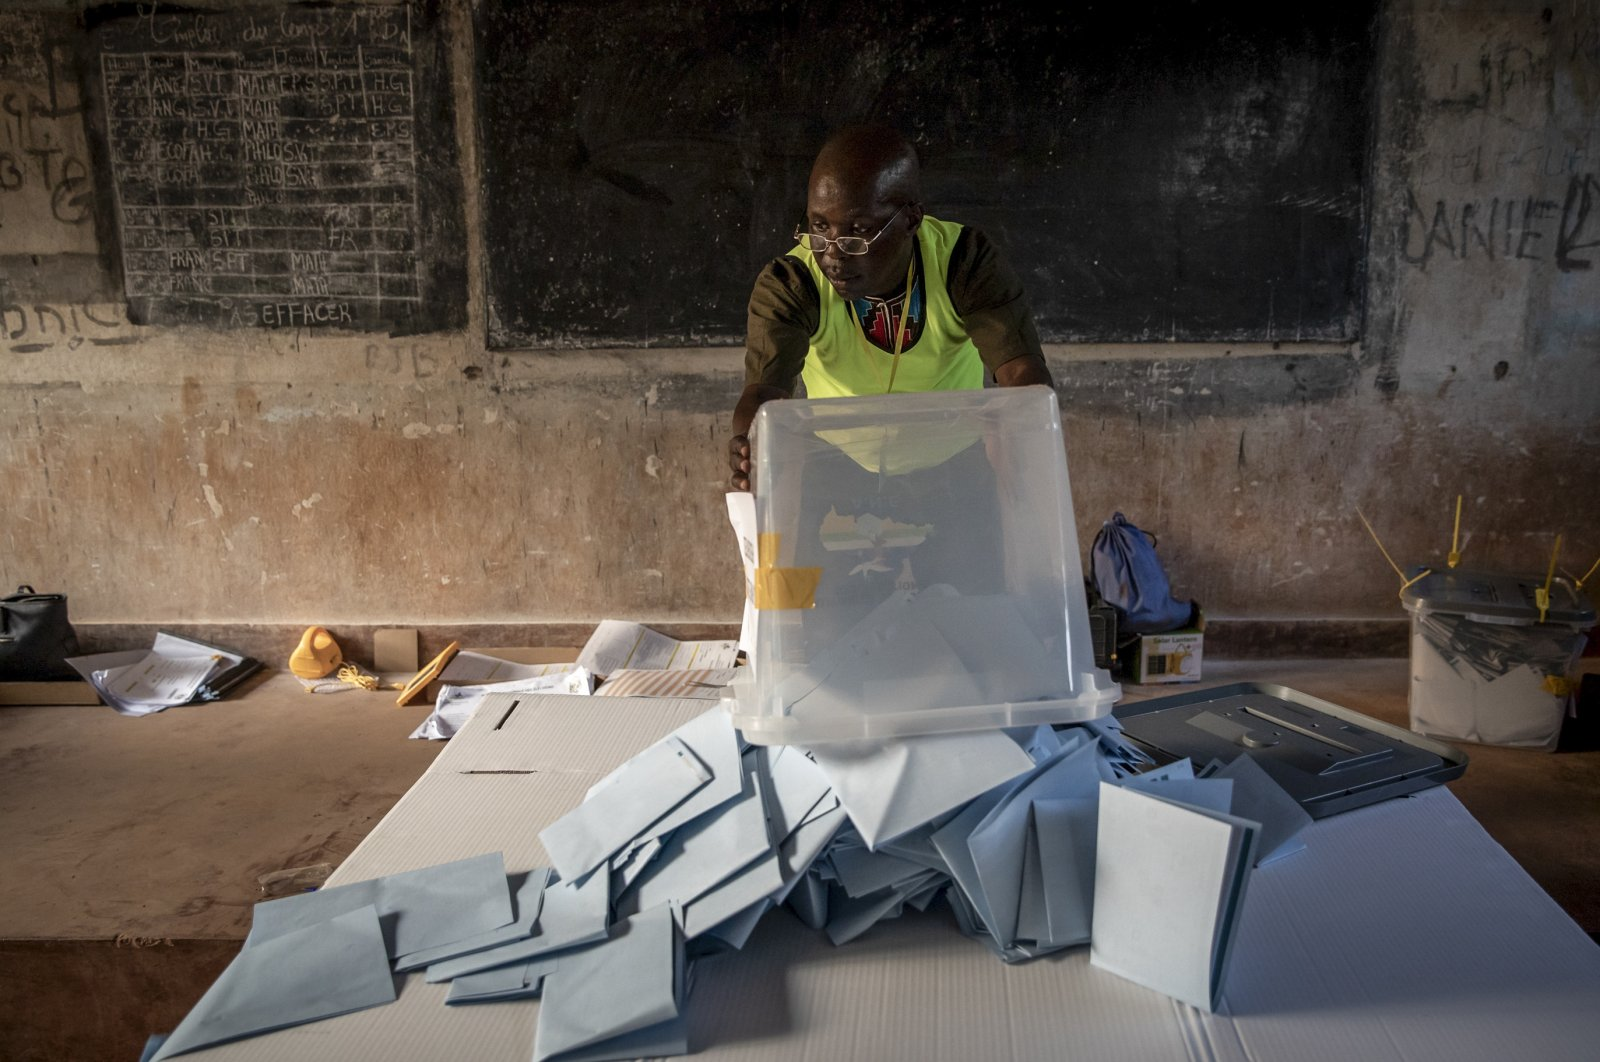 Electoral workers start to count votes at the Lycee Boganda polling station in the capital Bangui, Central African Republic Sunday, Dec. 27, 2020. (AP Photo)